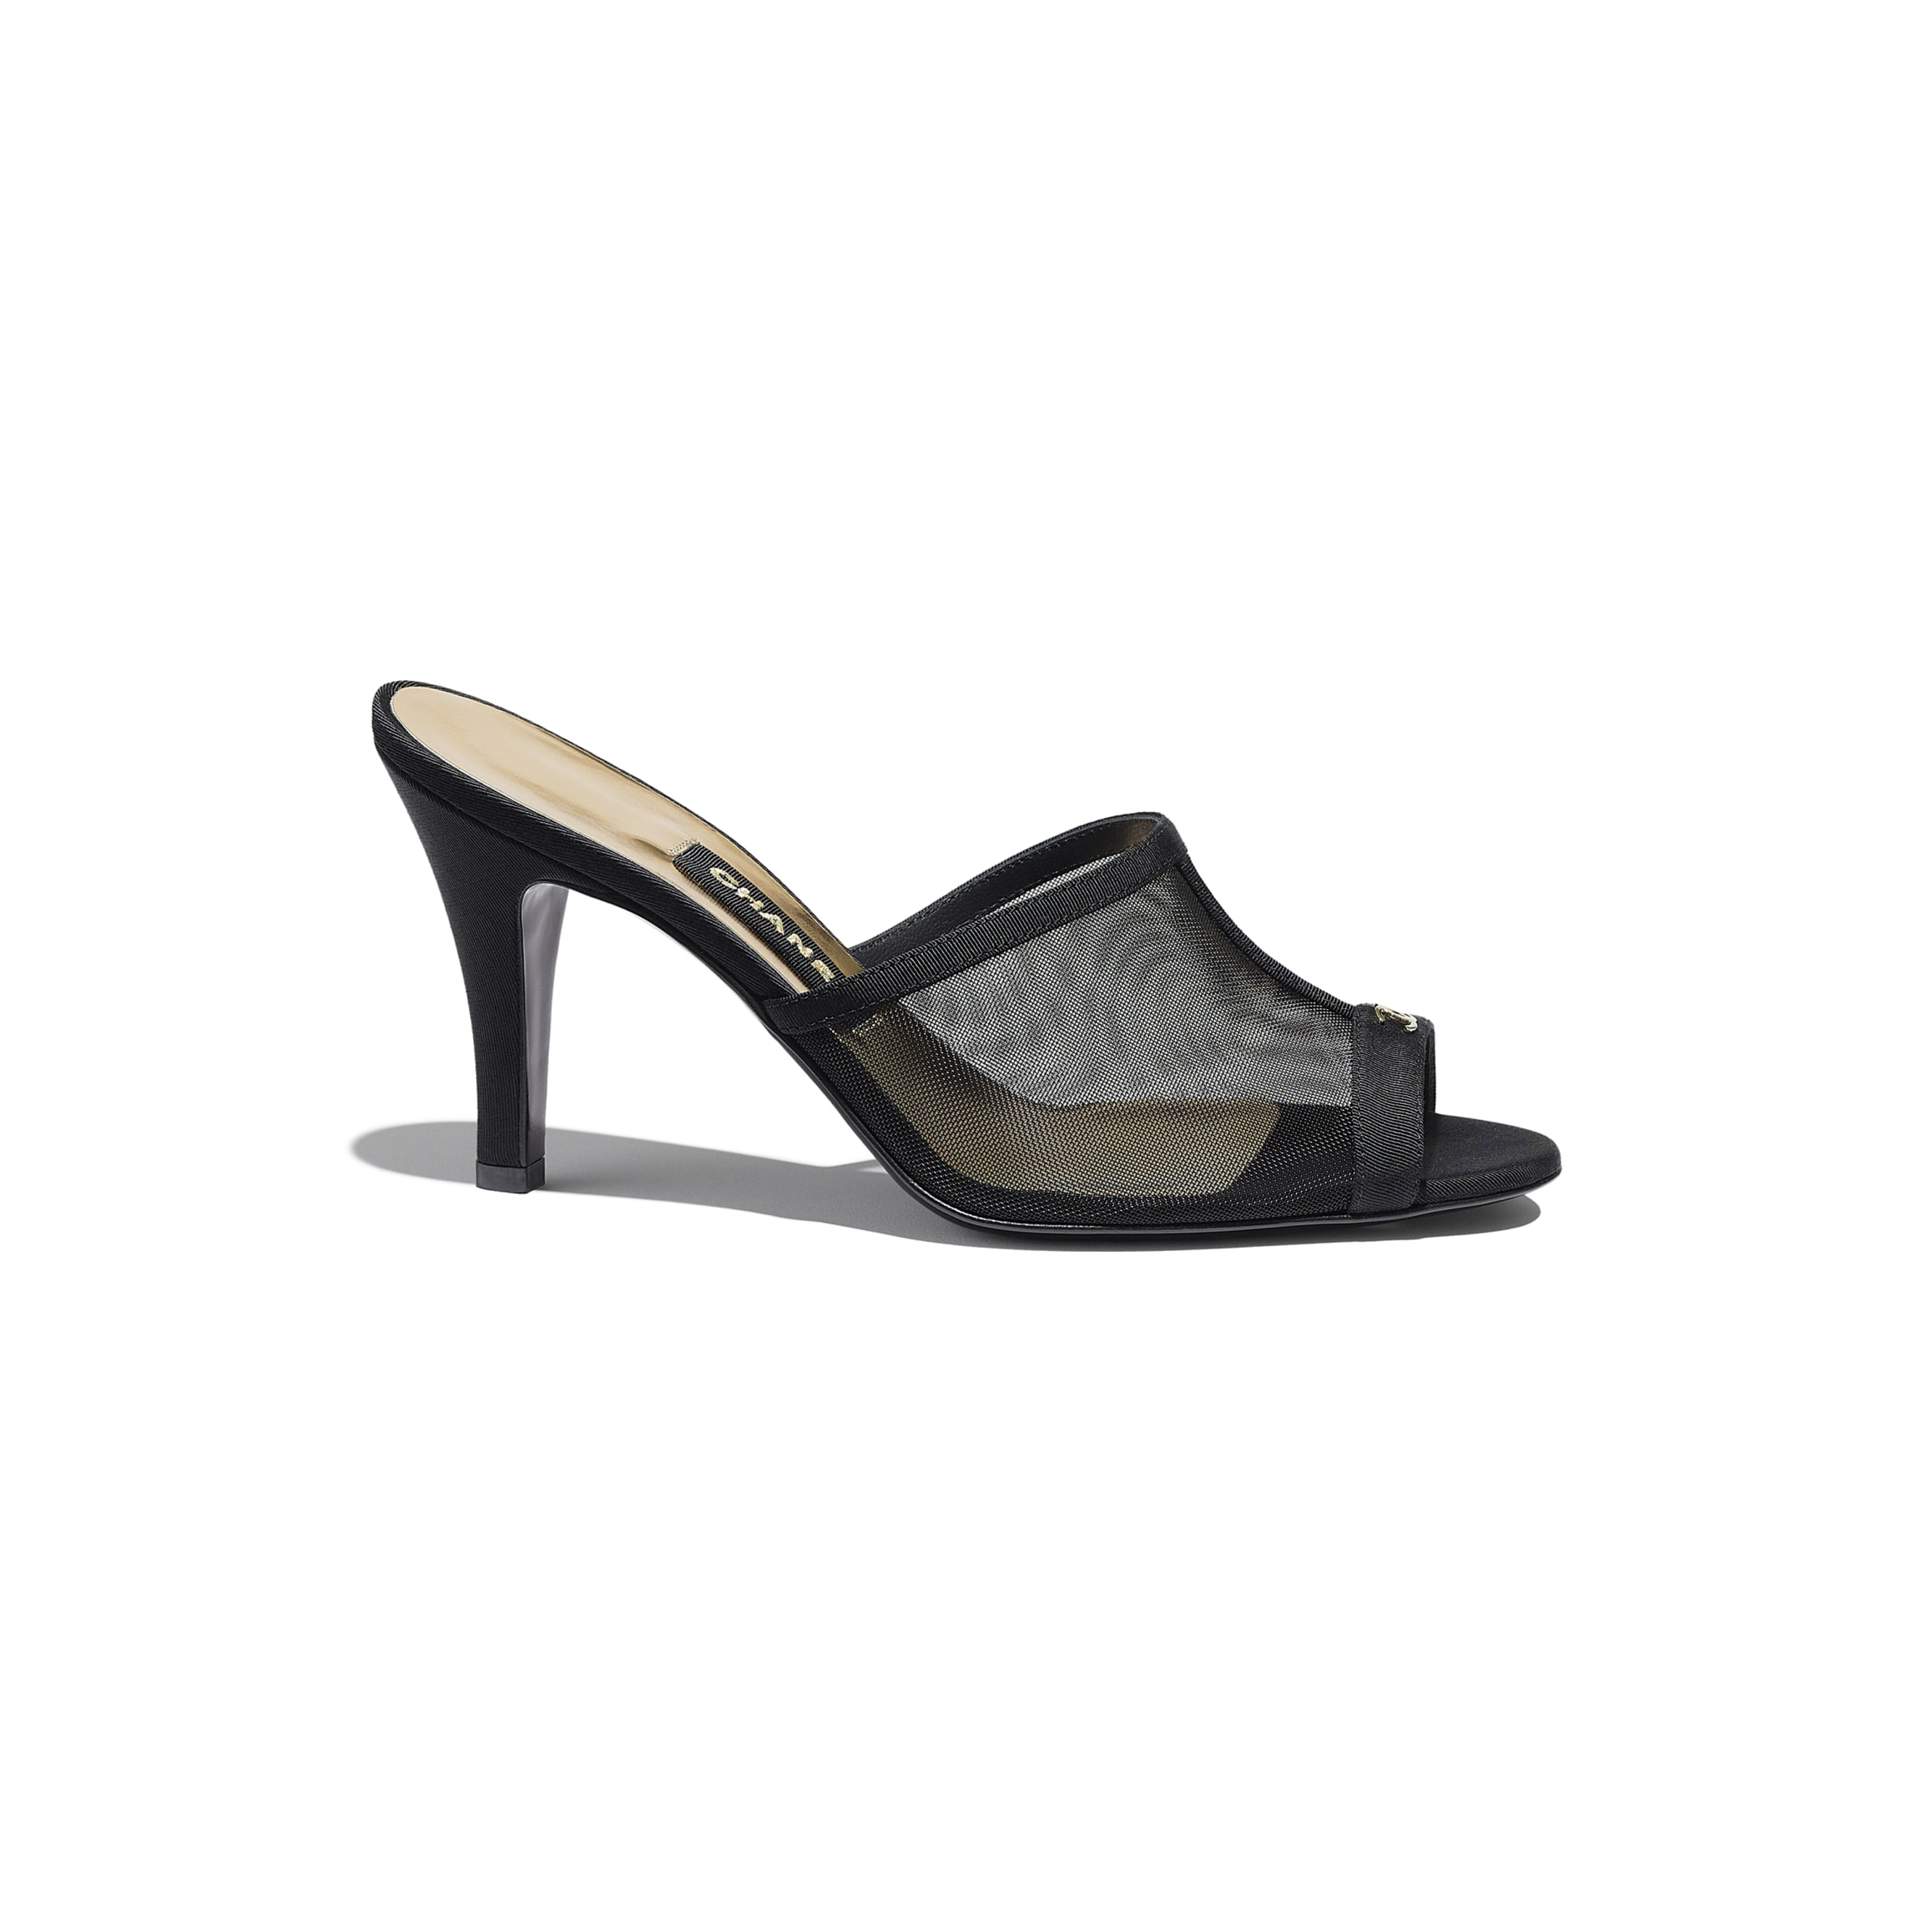 Mules - Black - Mesh & Grosgrain - CHANEL - Default view - see standard sized version